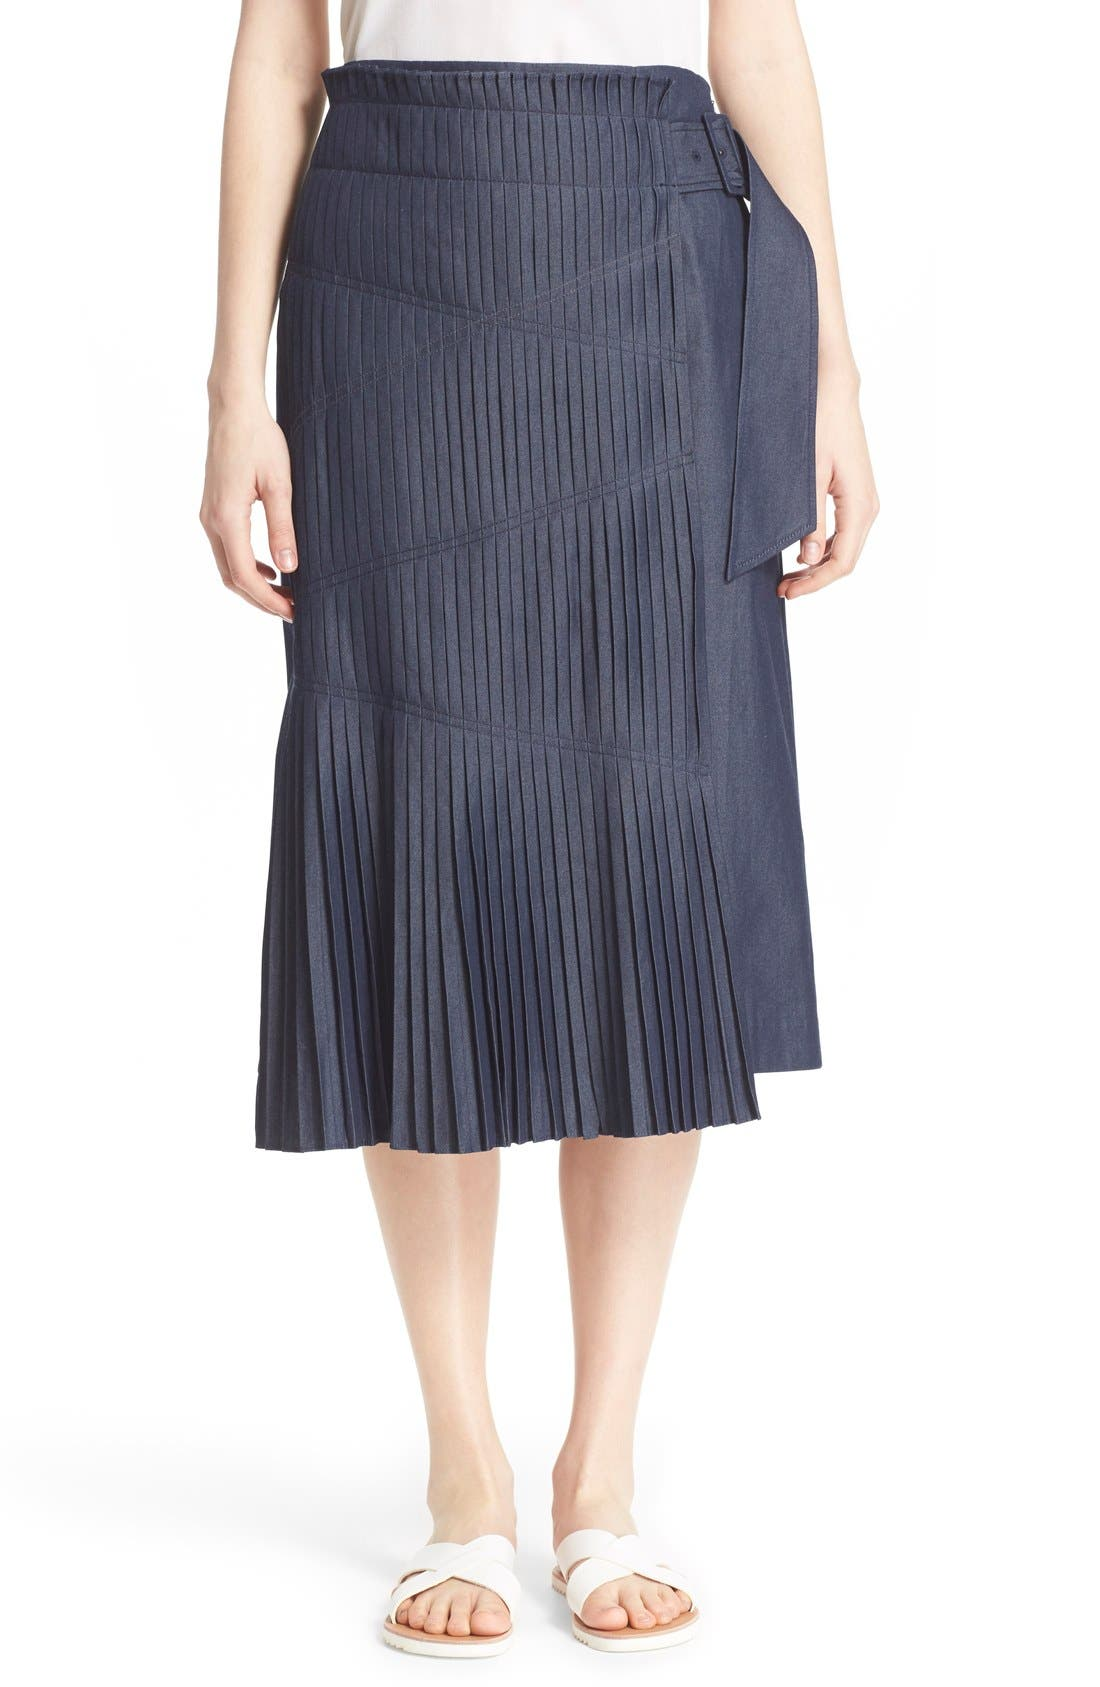 'Manuela' Pleated Cotton Midi Skirt,                             Main thumbnail 1, color,                             Steel Denim